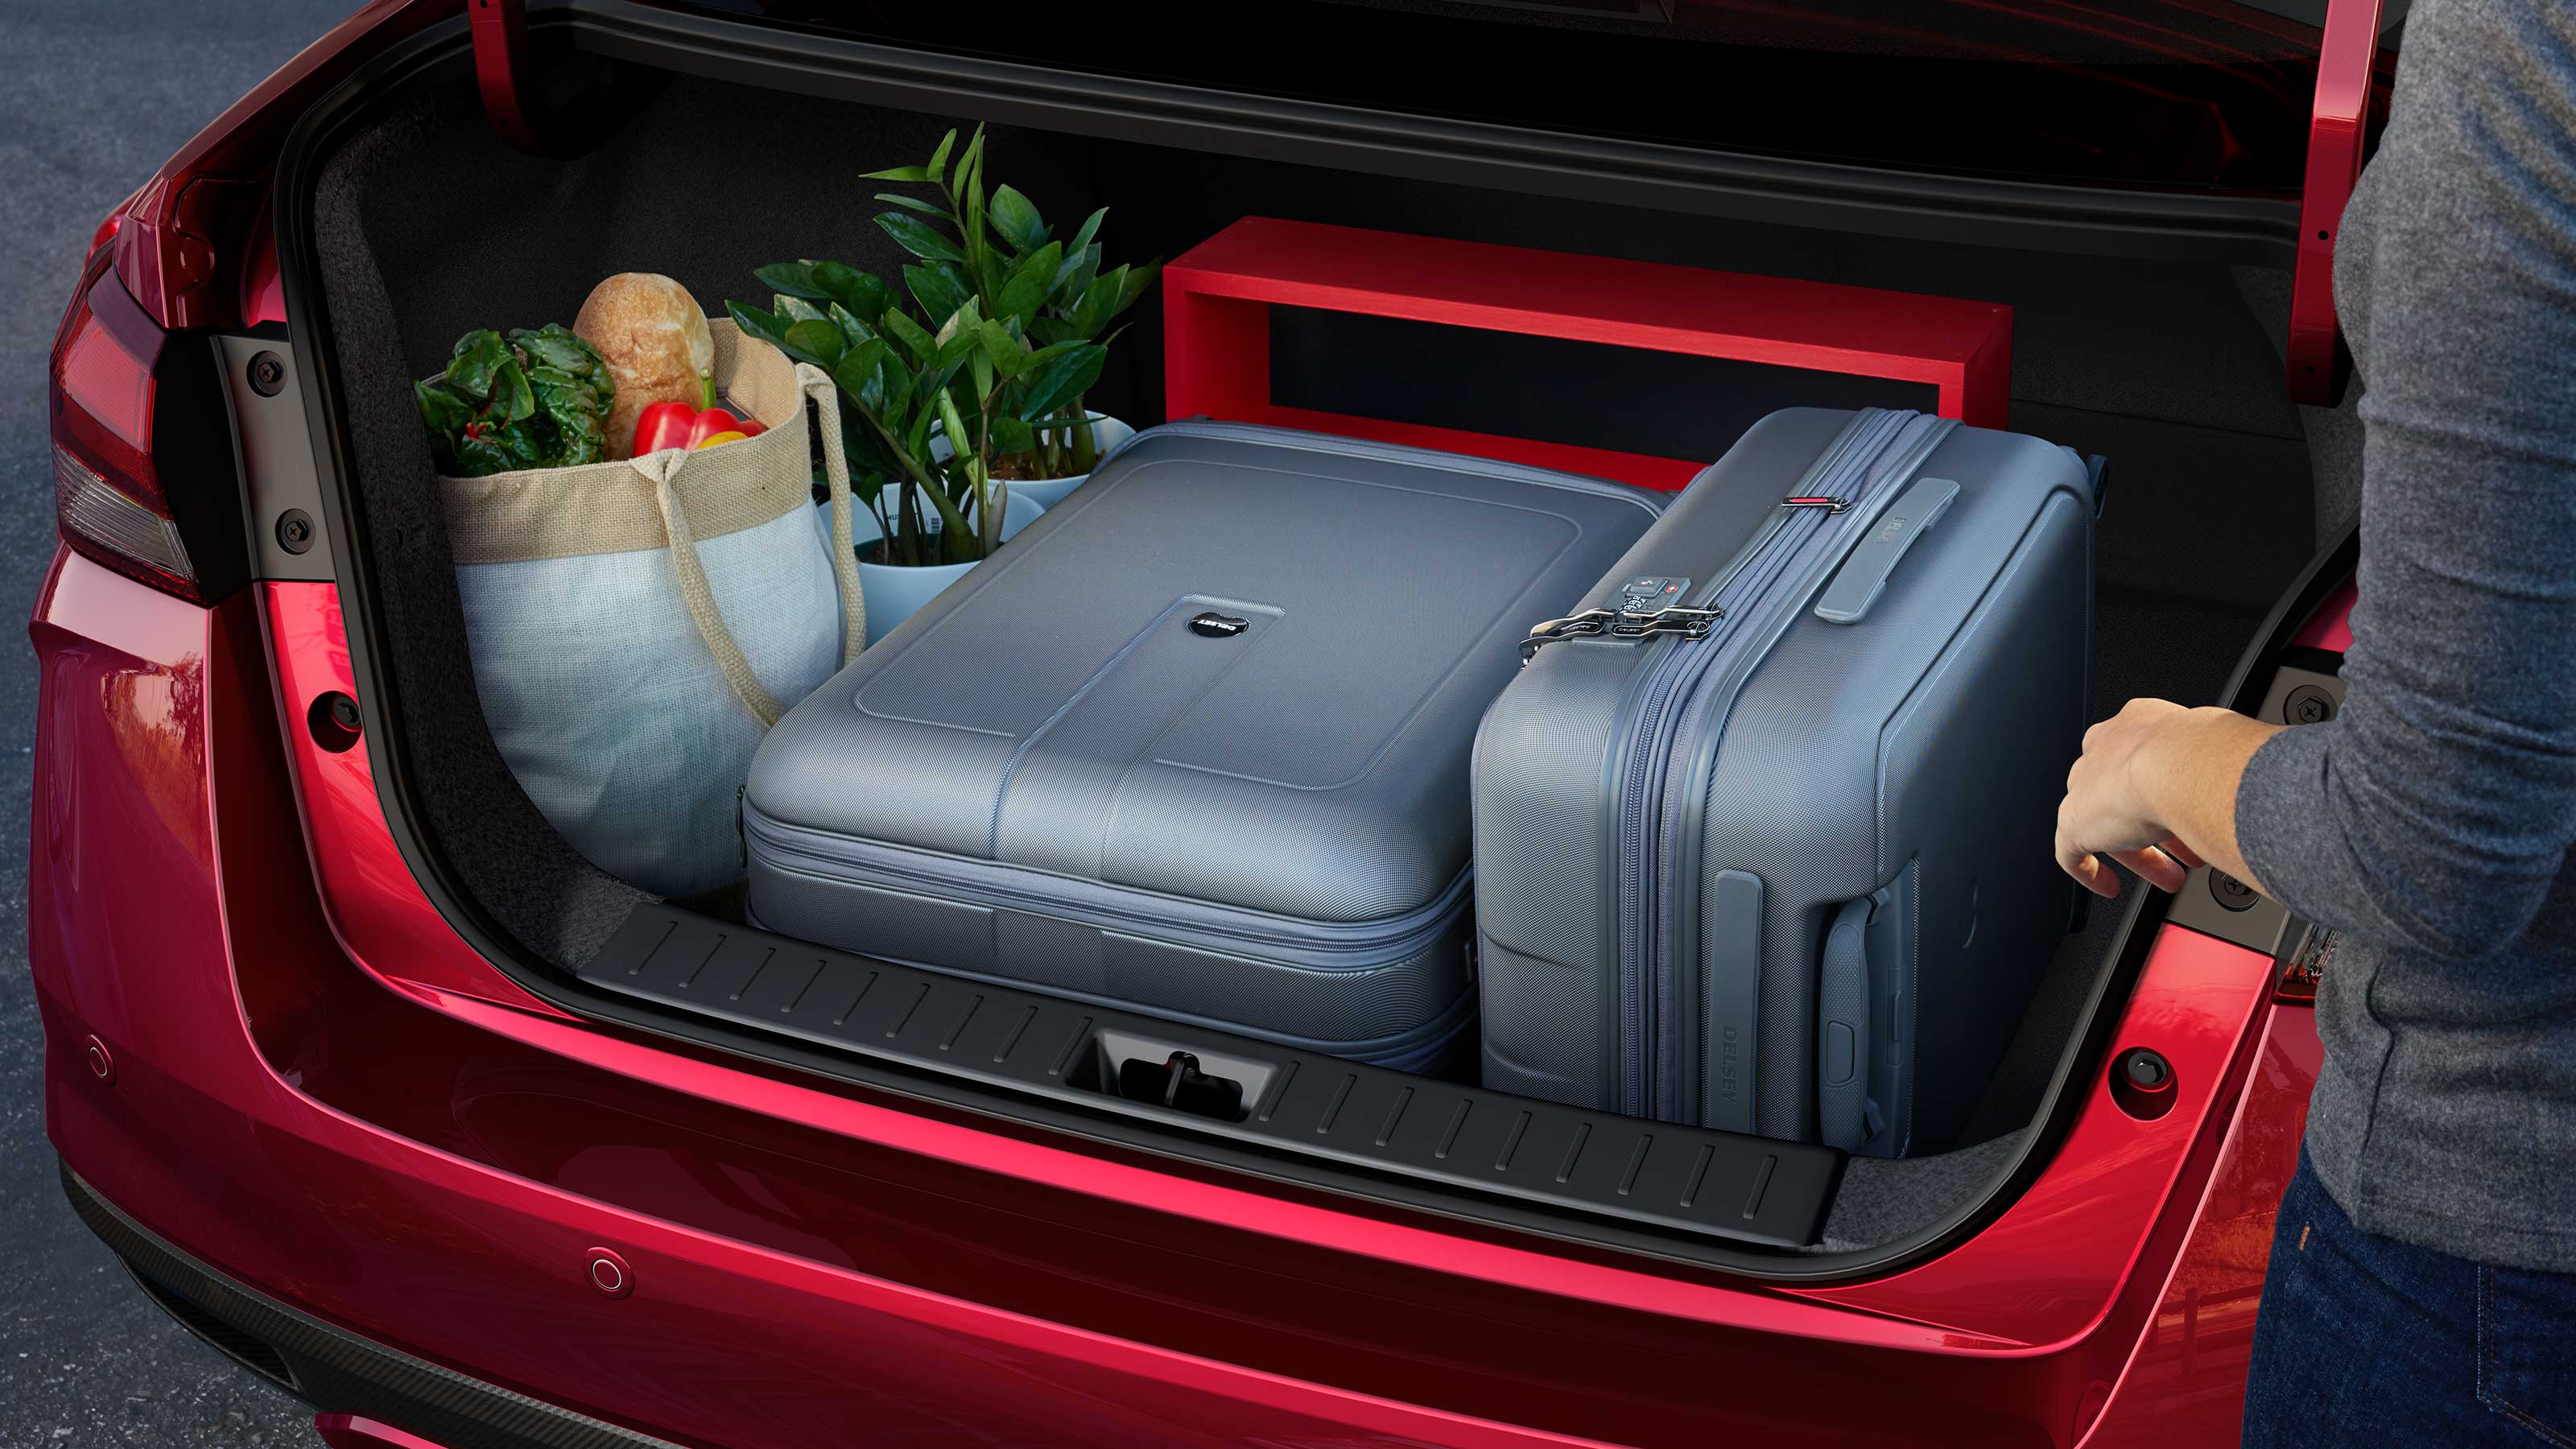 2020 Nissan SUNNY trunk space